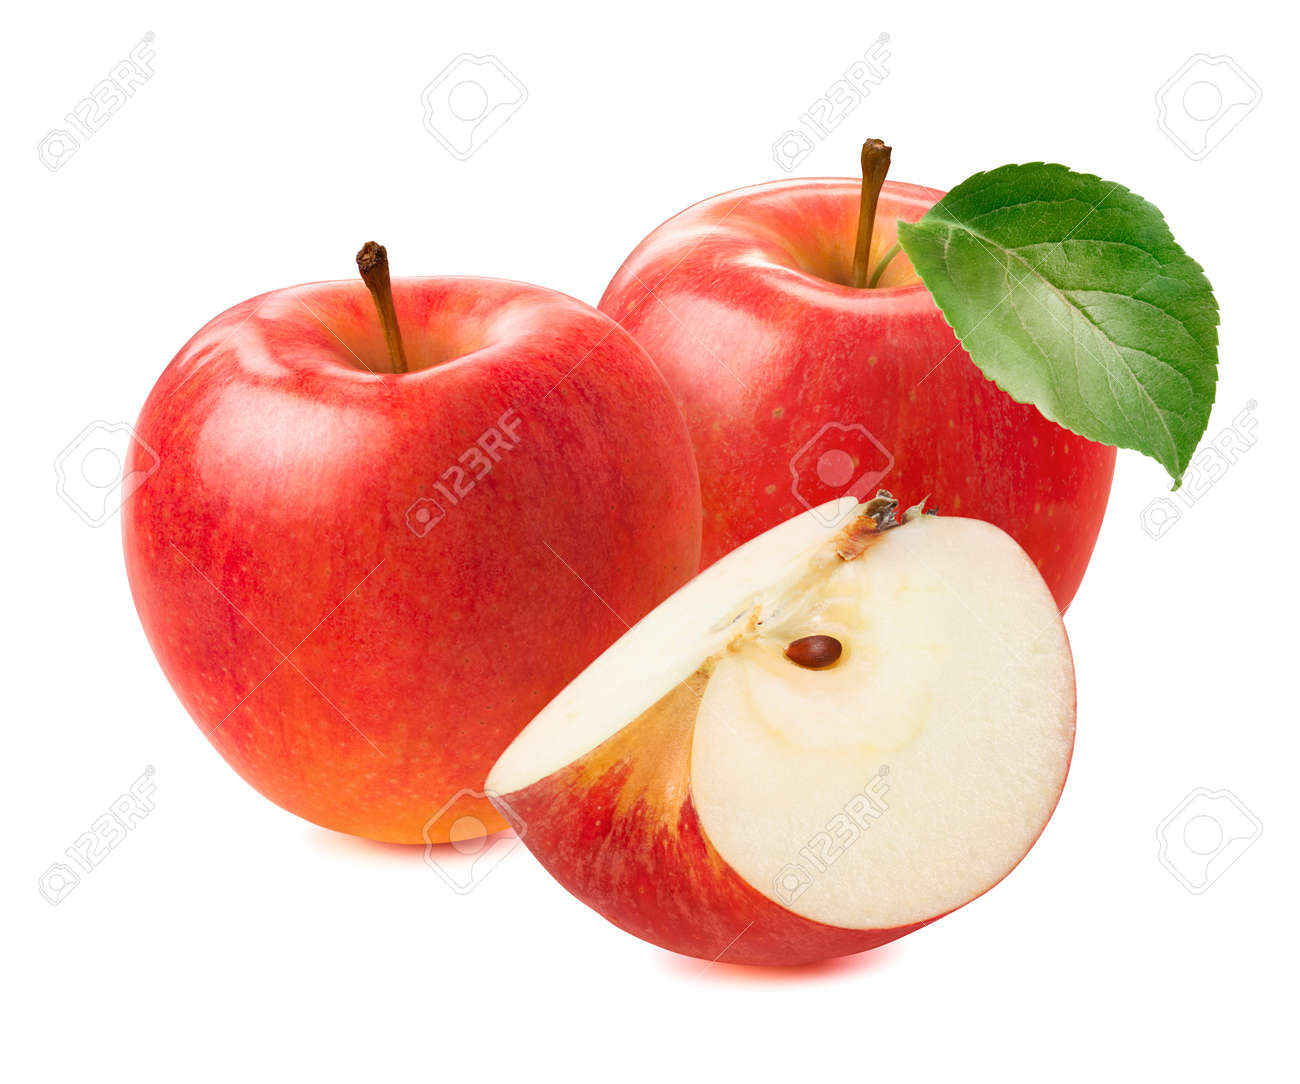 Red apples and slice isolated on white background. - 173414061